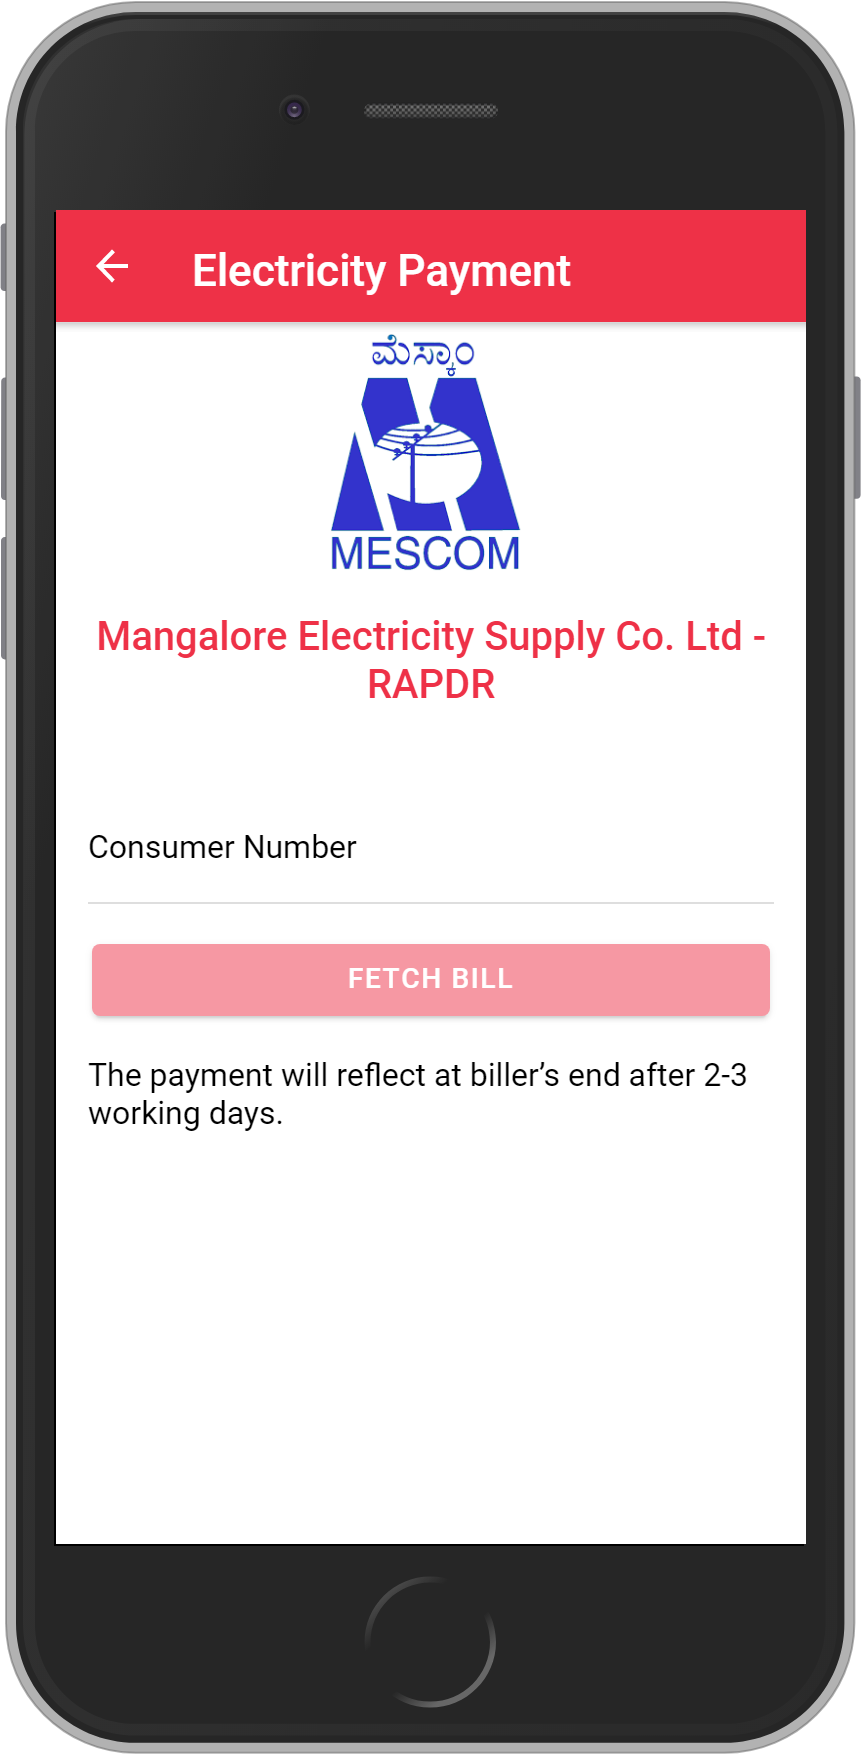 Get UNLIMITED <b>0.1%</b> CASHBACK on Mangalore Electricity Supply Co. Ltd – RAPDR Bill Payment.